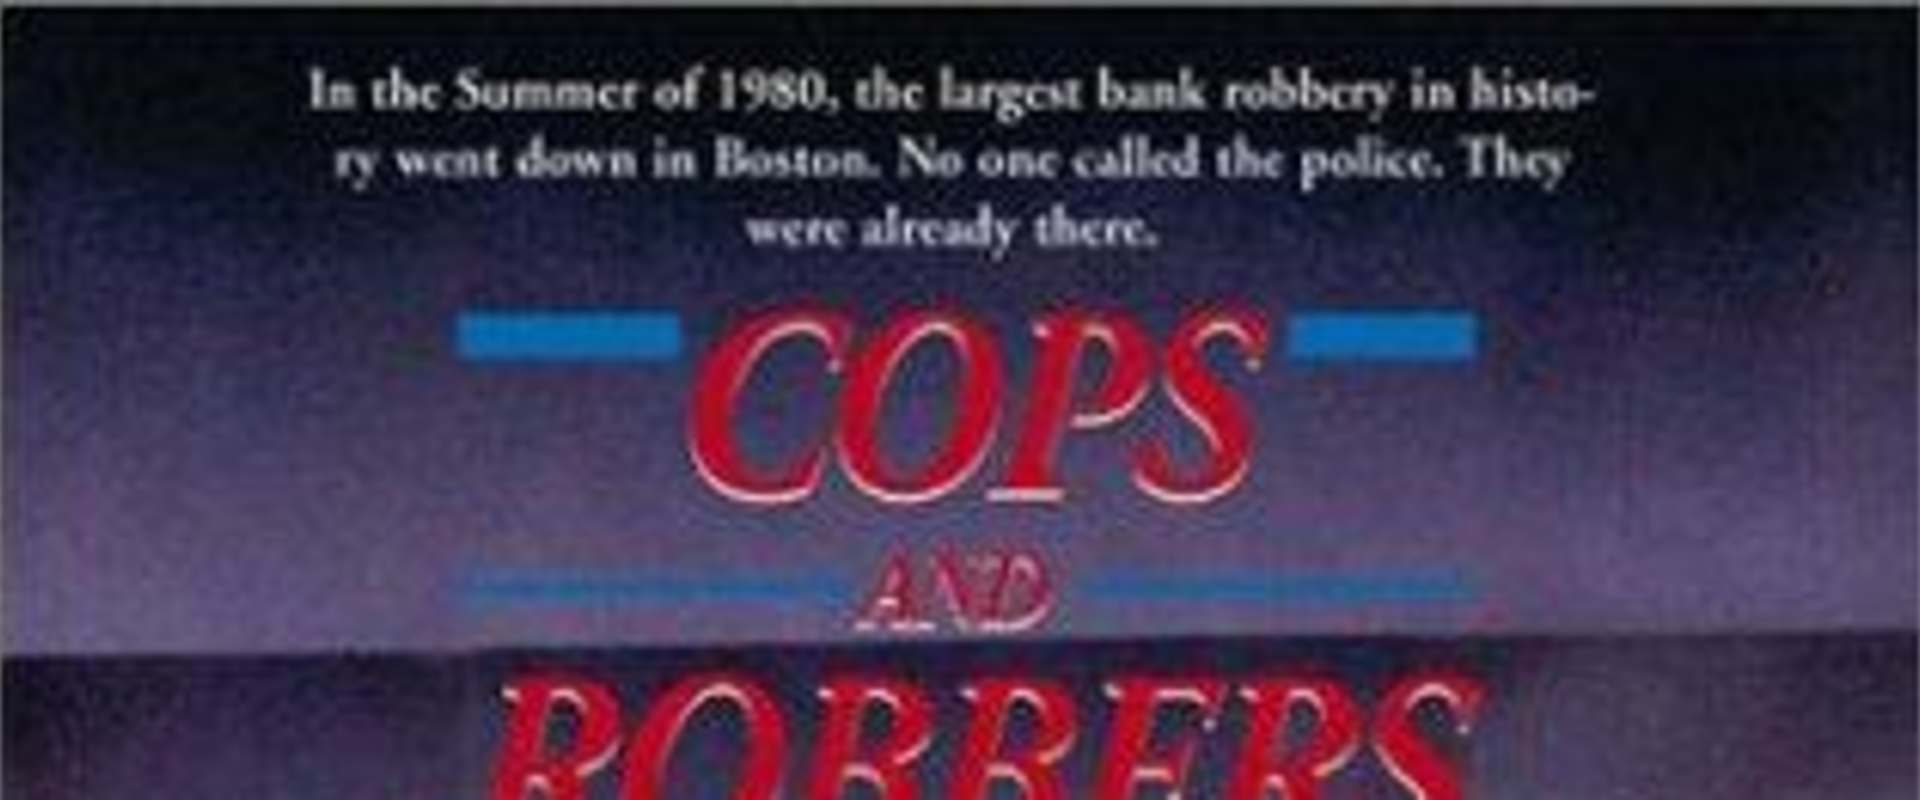 Cops and Robbers background 2